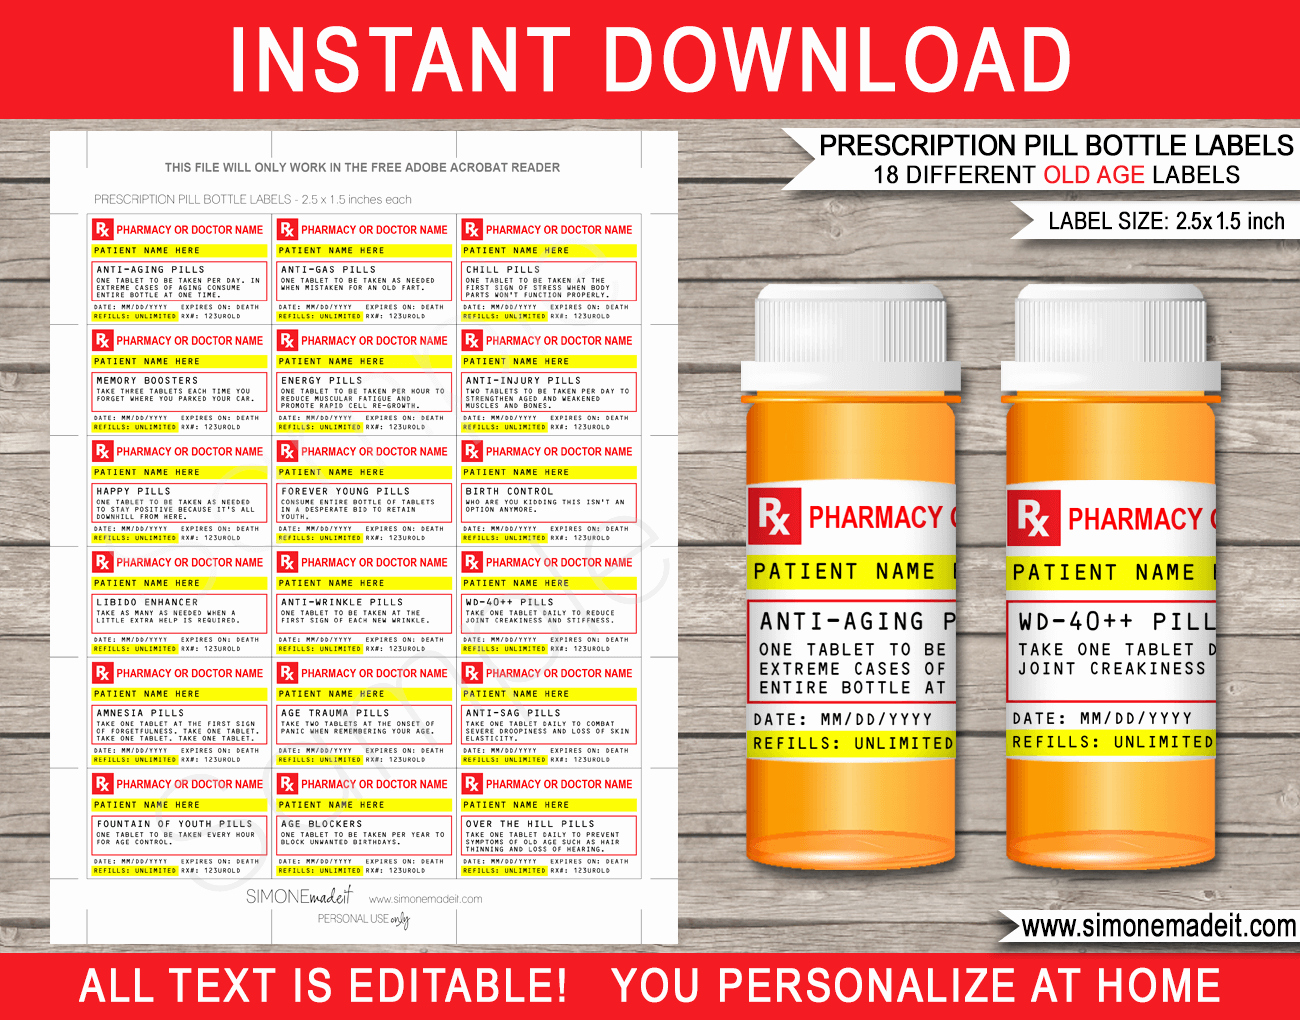 Pill Bottle Label Maker Inspirational Old Age Prescription Pill Bottle Labels Gag Gift